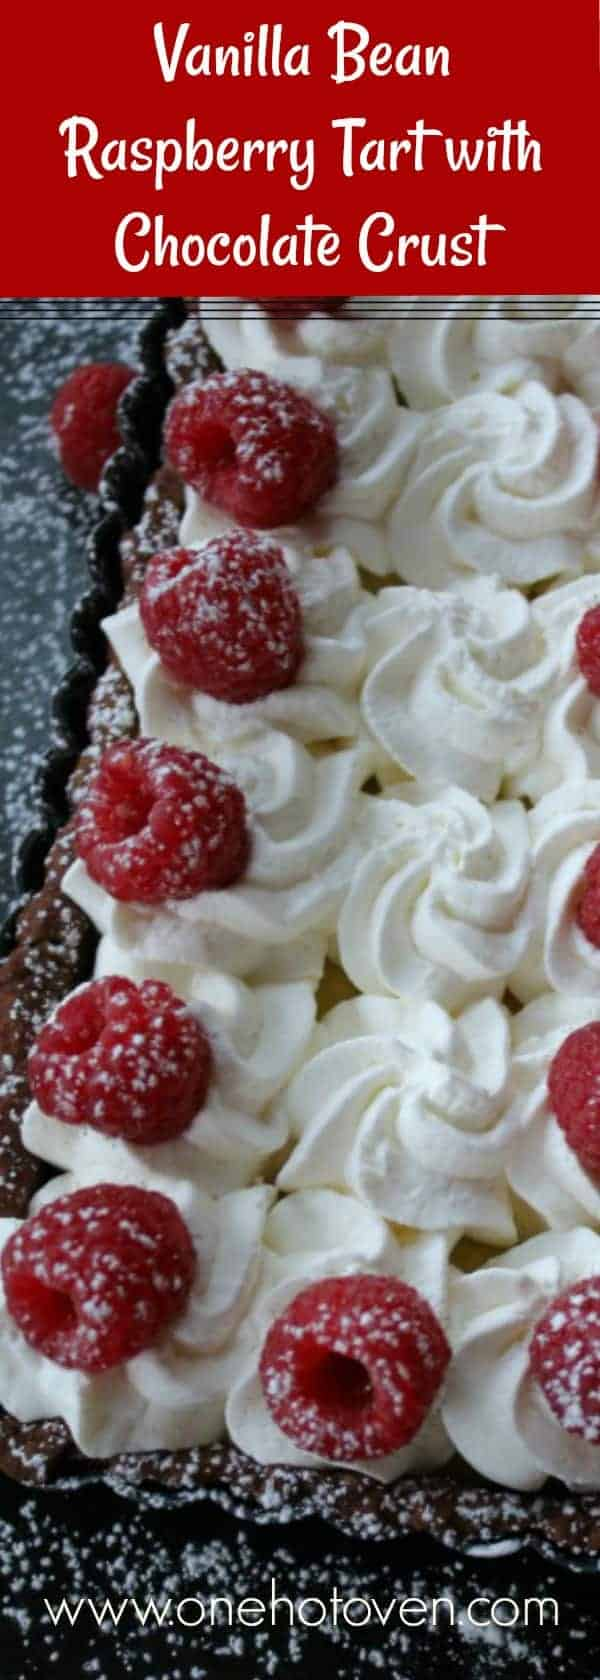 Vanilla Bean Raspberry Tart with Chocolate Crust - One Hot Oven - This tart is bursting with flavors that combine for one luscious bite.